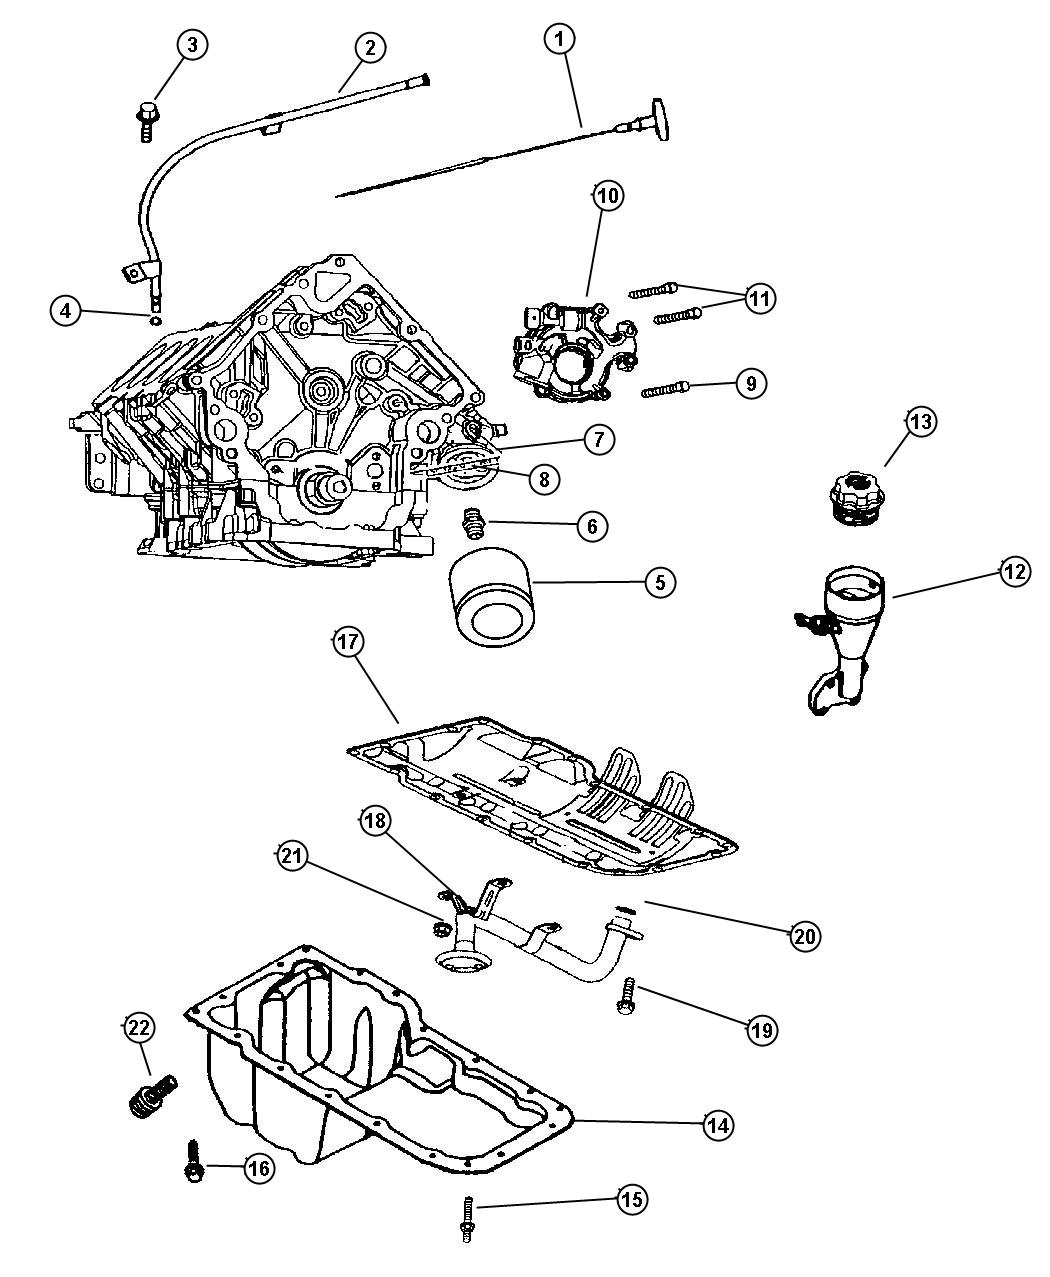 426 Hemi Engine Diagram Get Free Image About Wiring 2004 Corvette Dodge Magnum